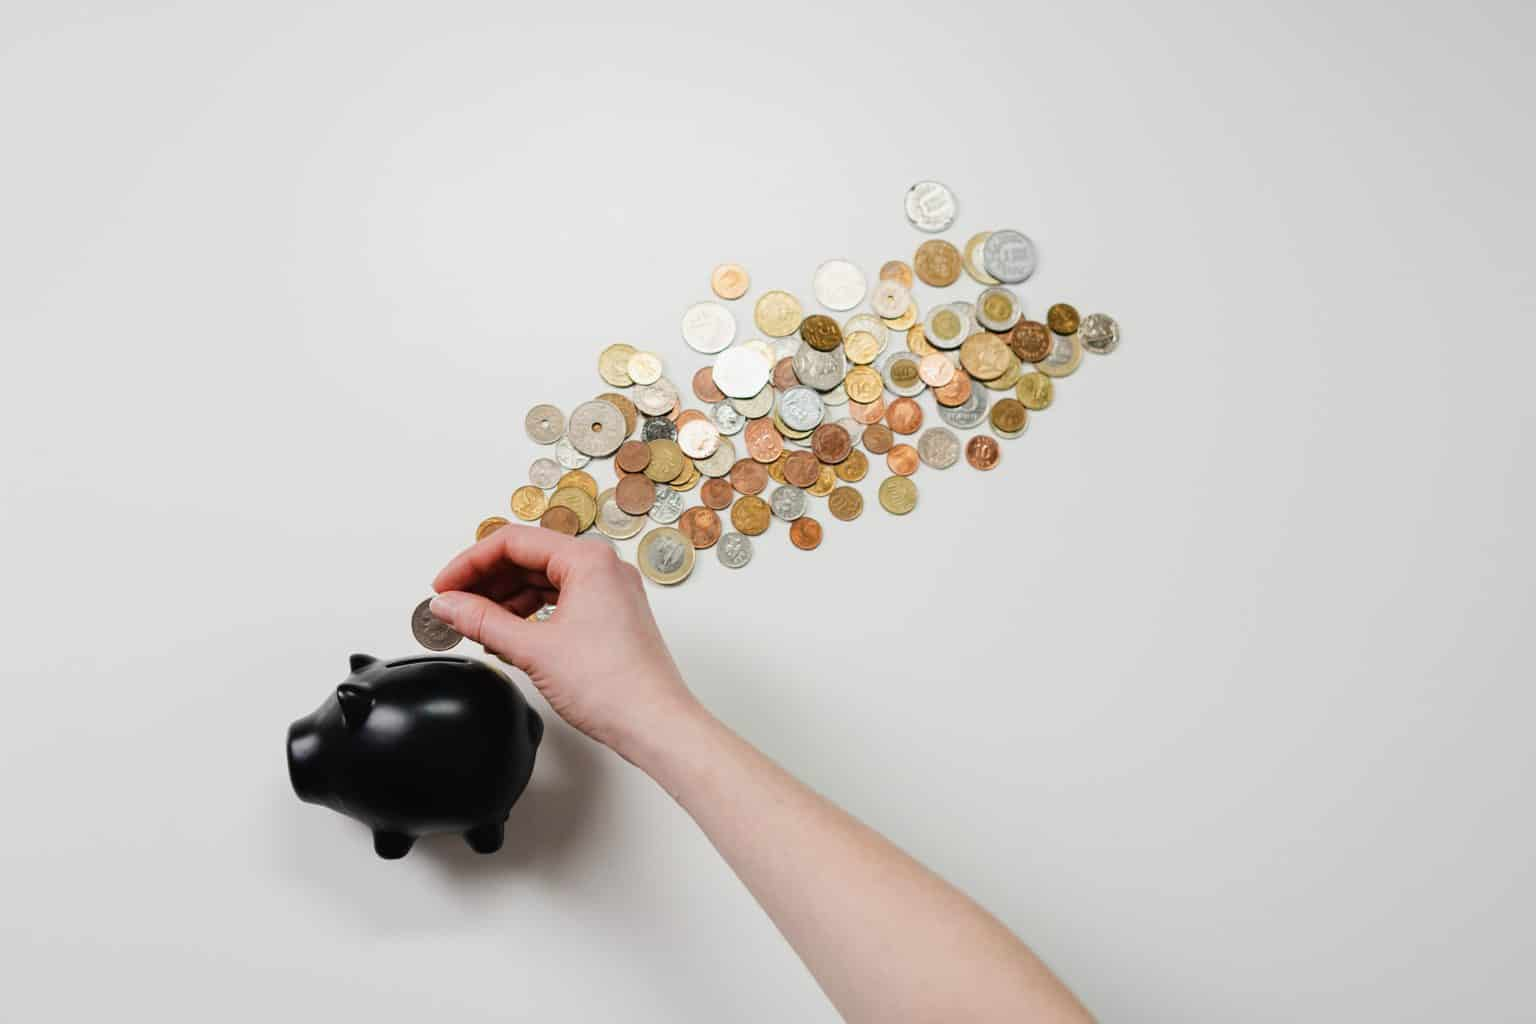 Teaching Your Children About Financial Security